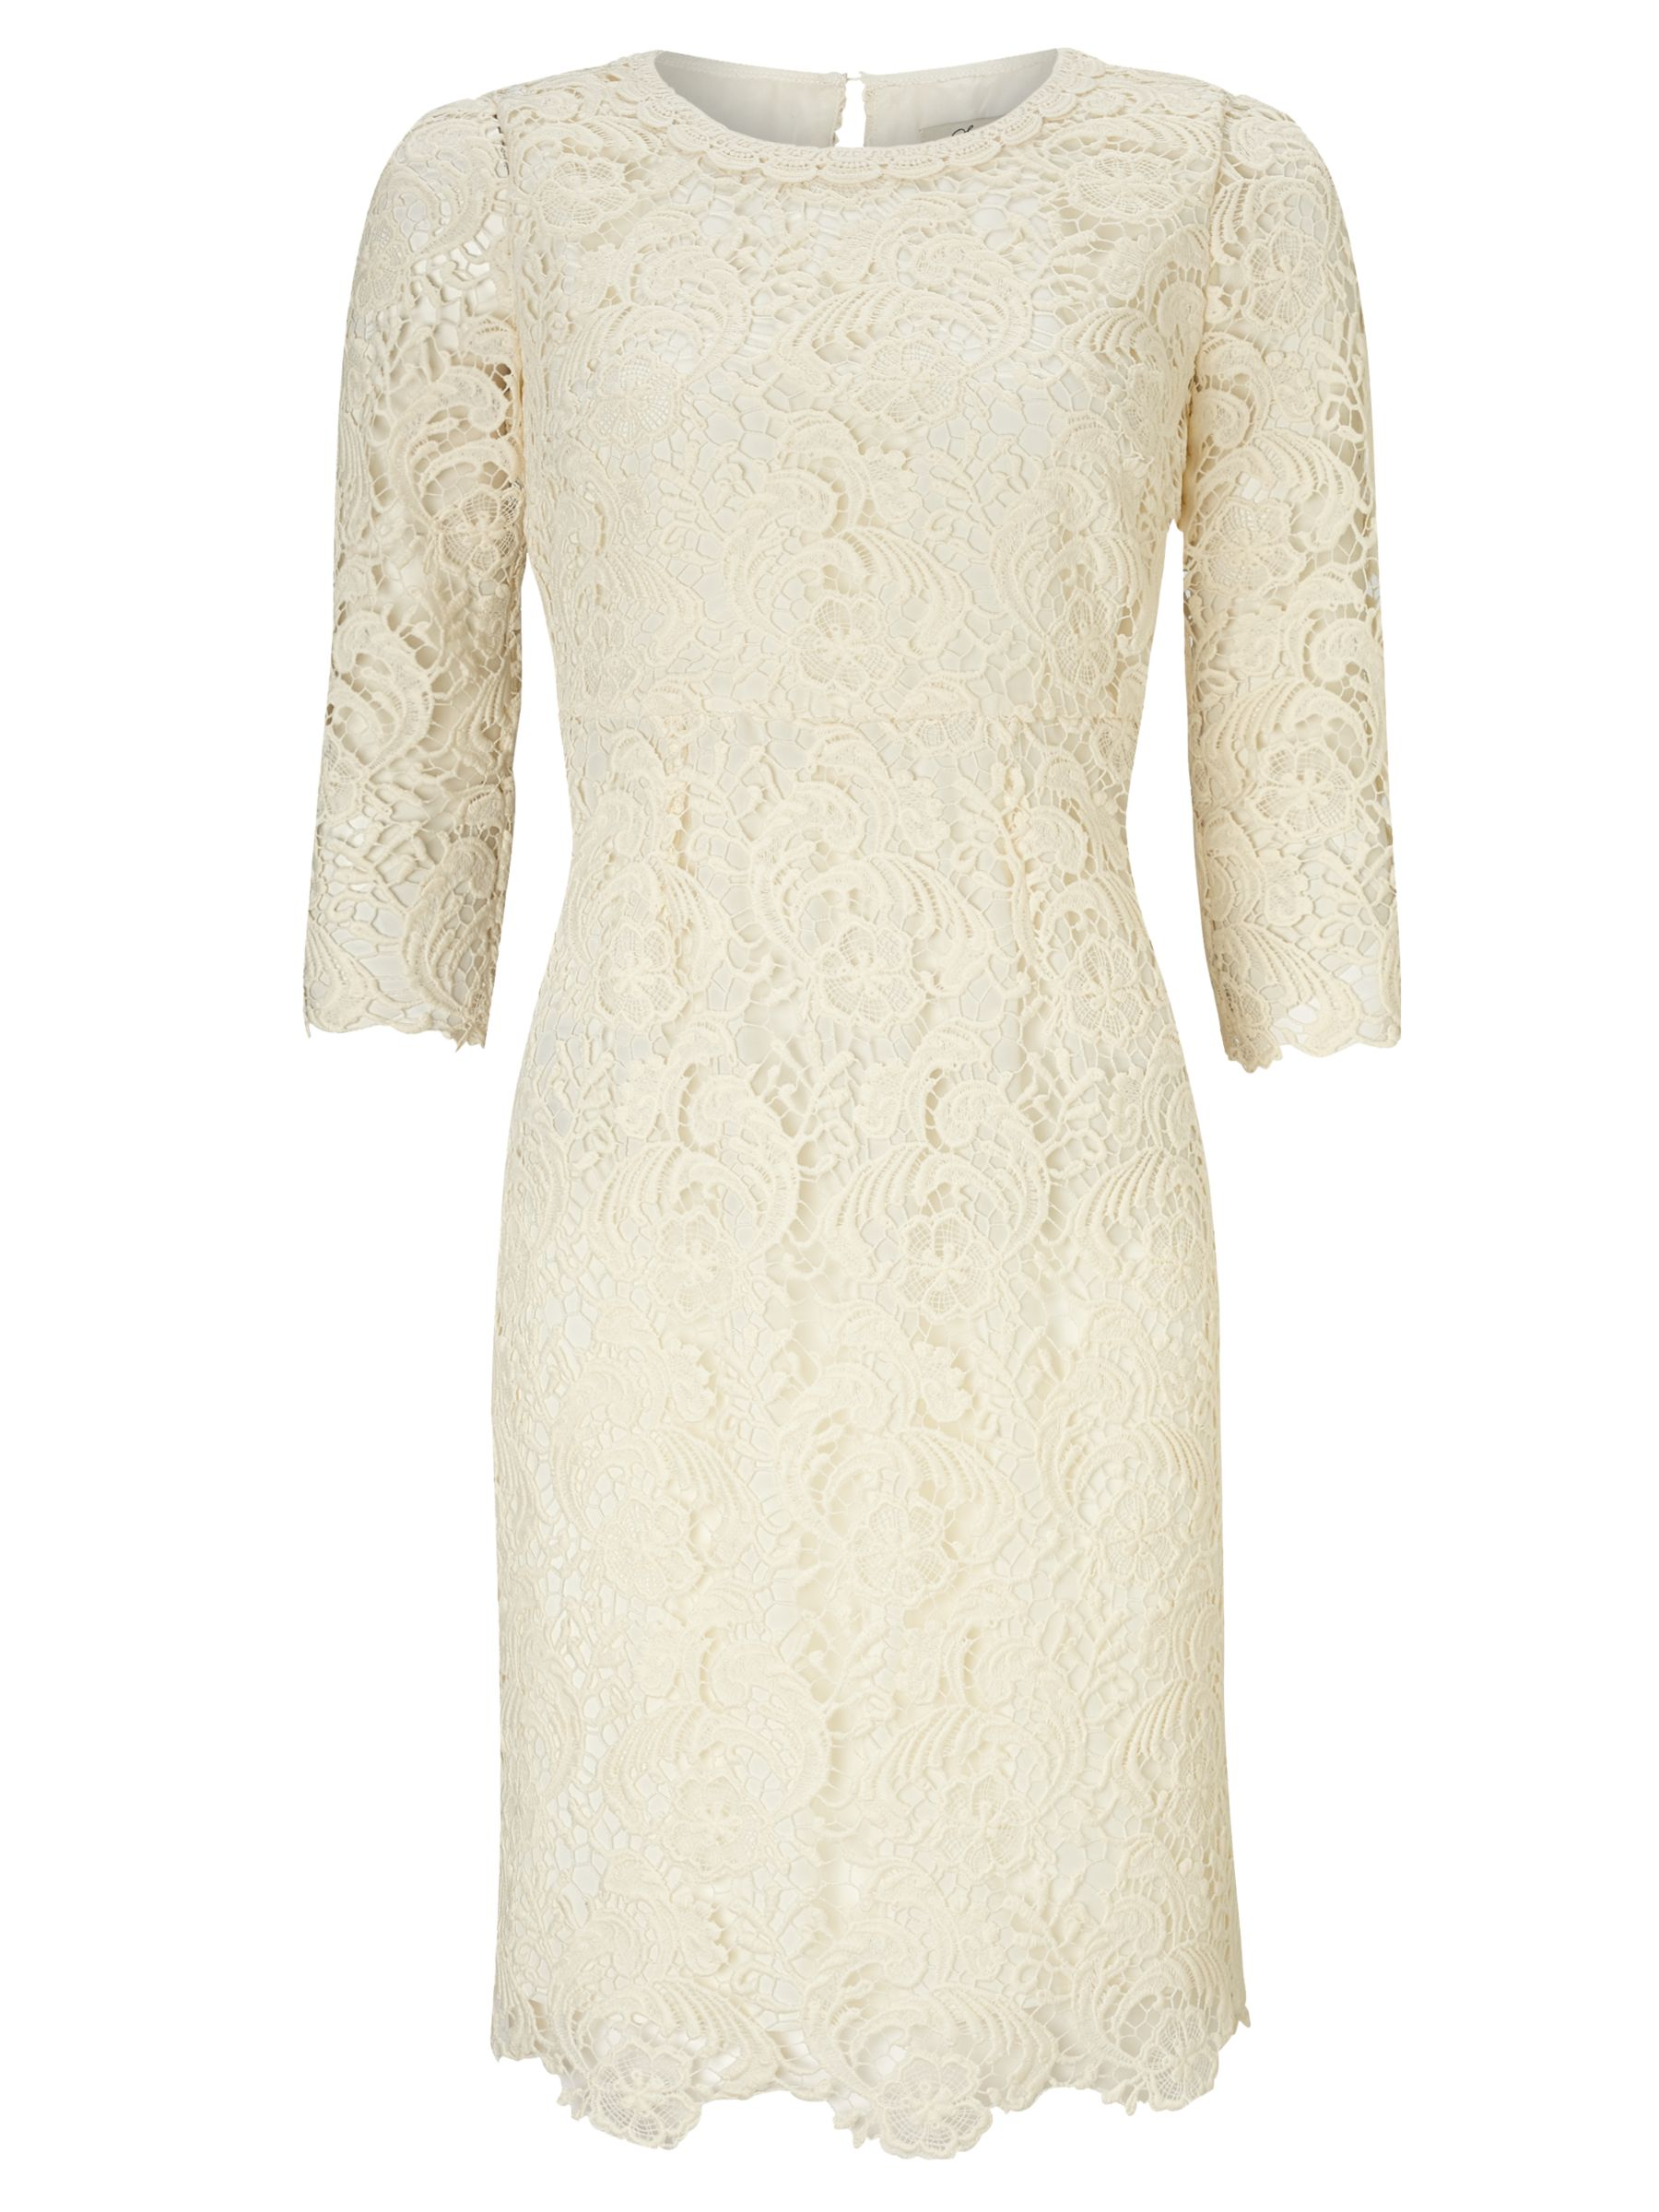 Somerset by Alice Temperley Lace Dress, Ivory